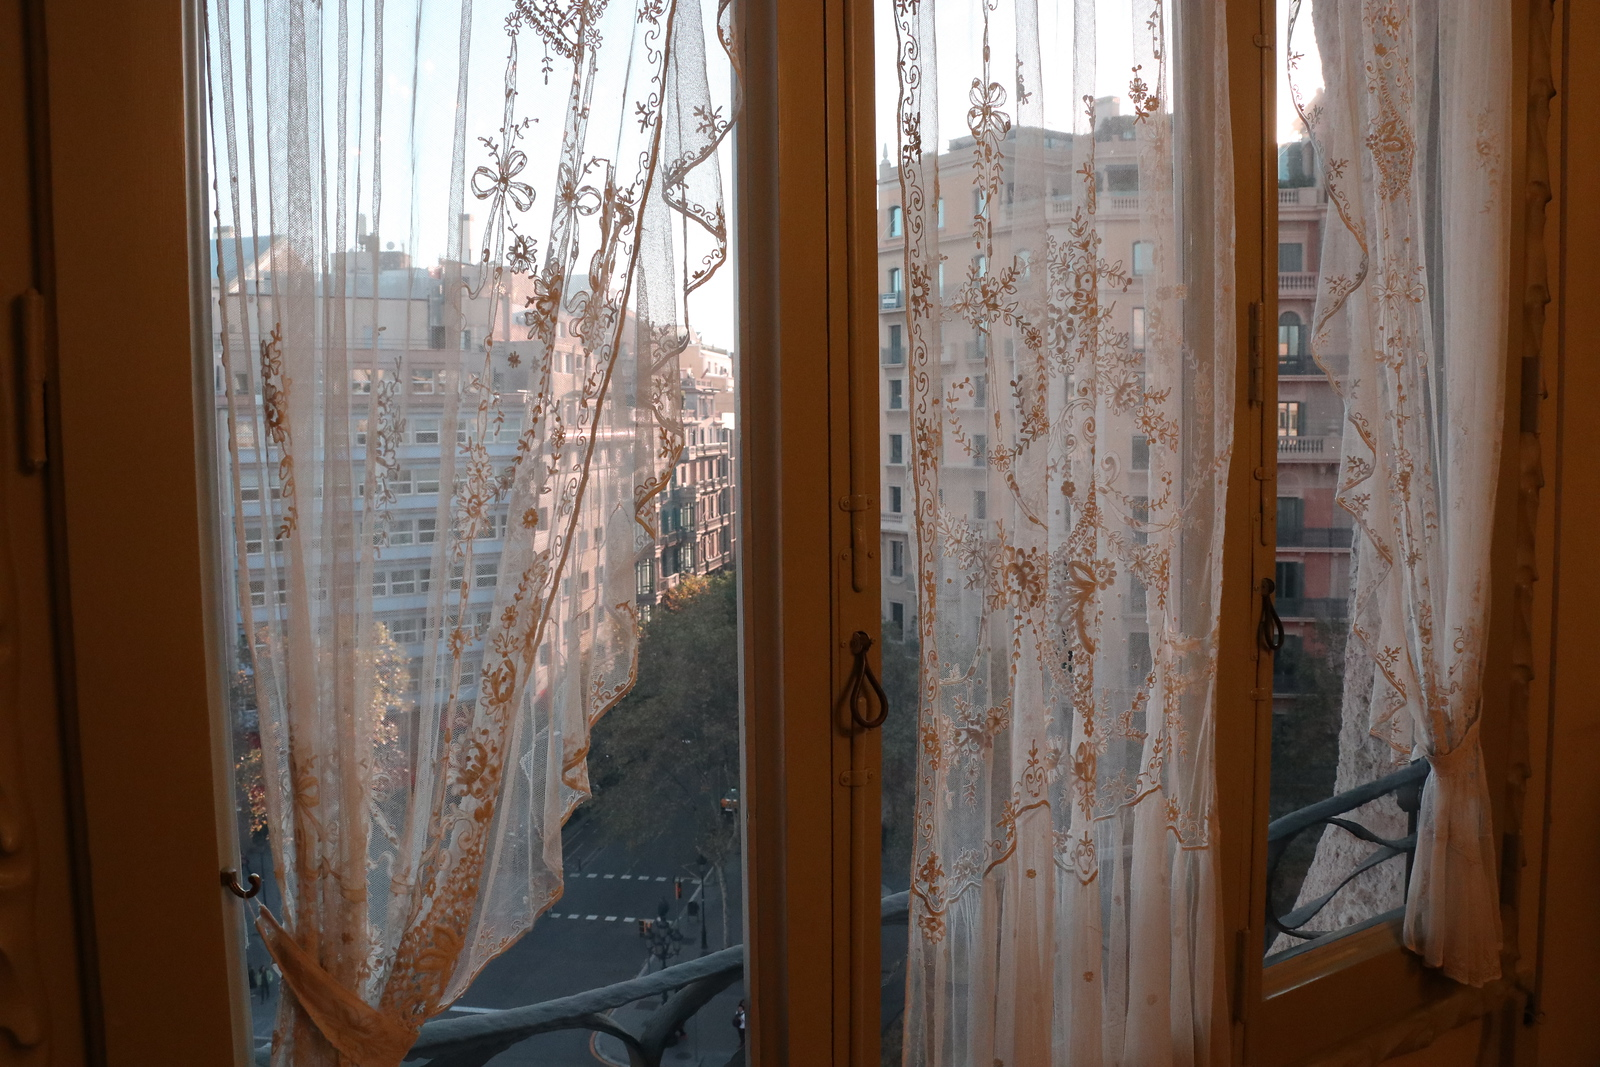 Last evening sun-drenched view through curtains from Antoni Gaudi's La Pedrera